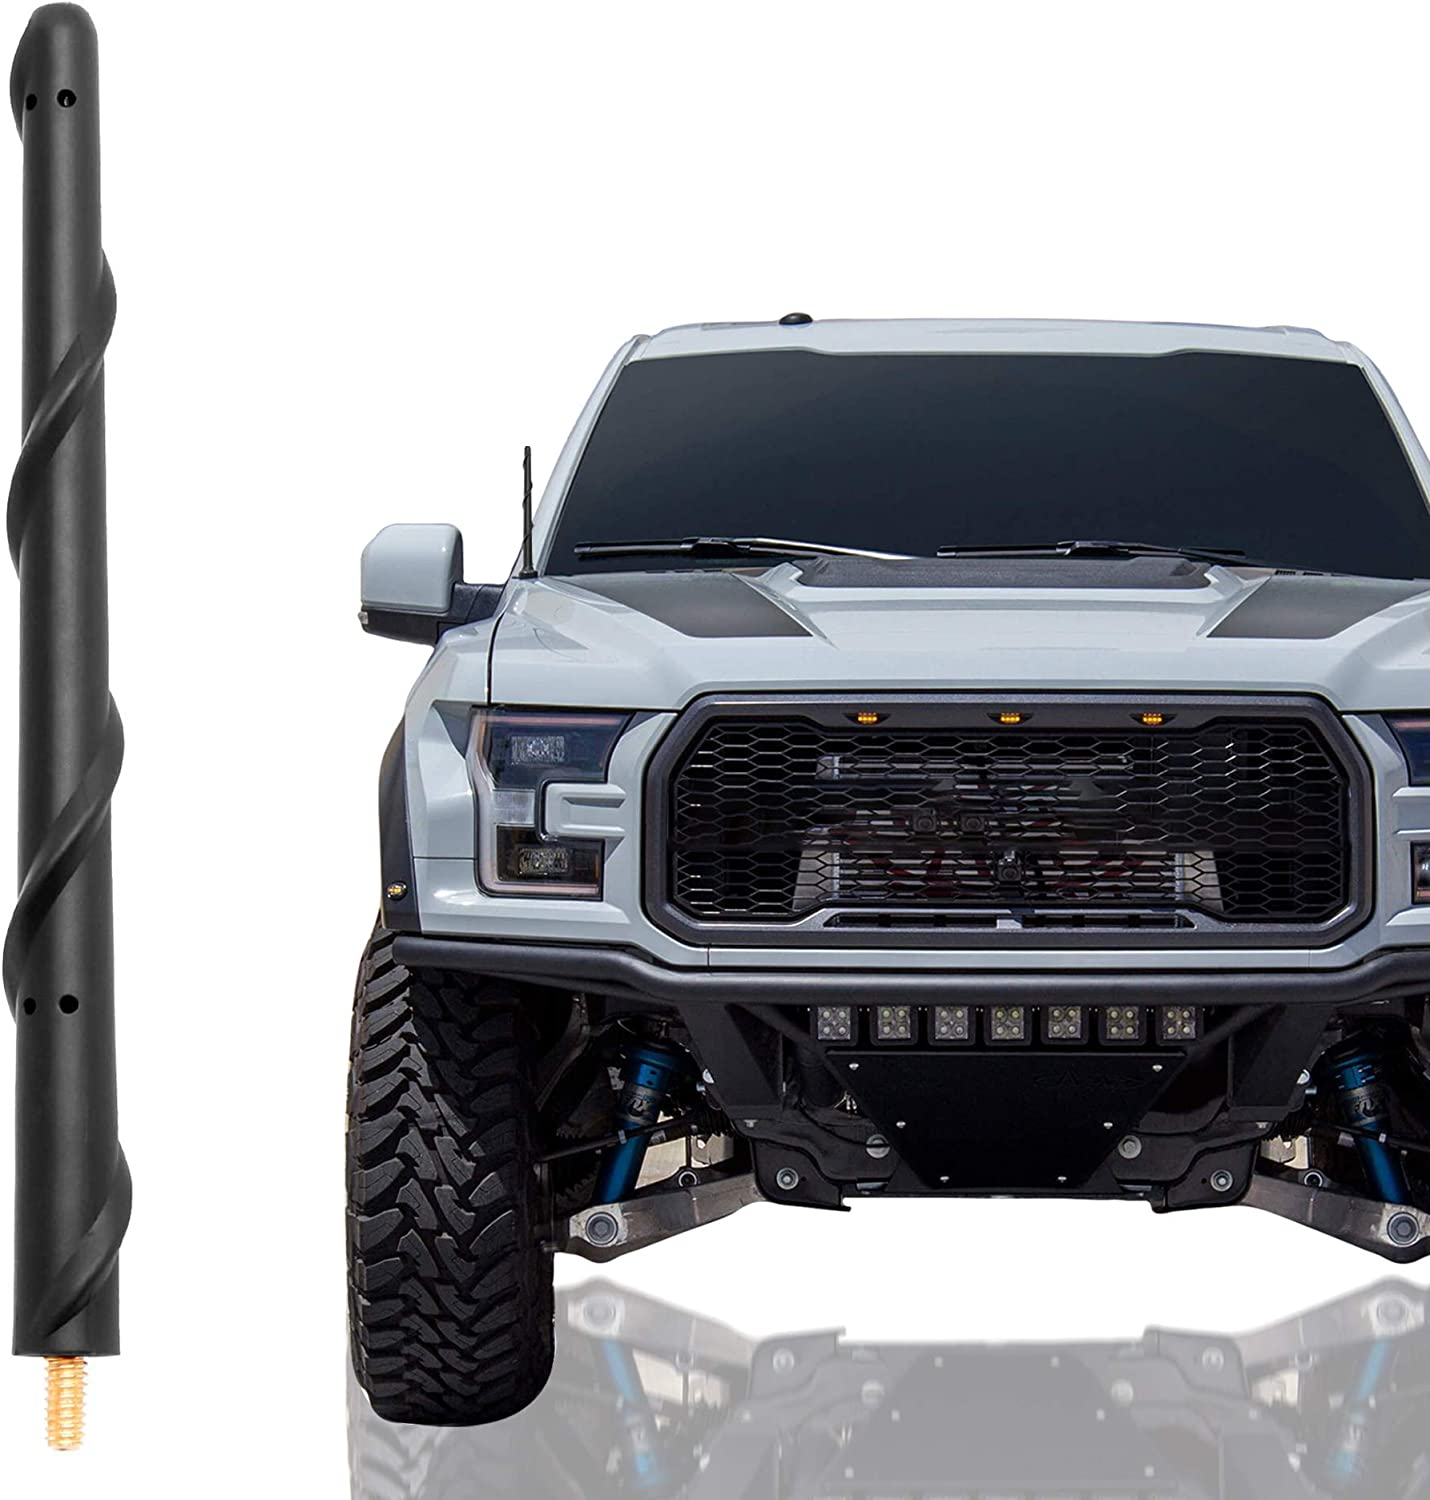 KSaAuto Short Charlotte Mall Antenna Compatible with 2021 model Ford F150 7 2009-2021 Inc